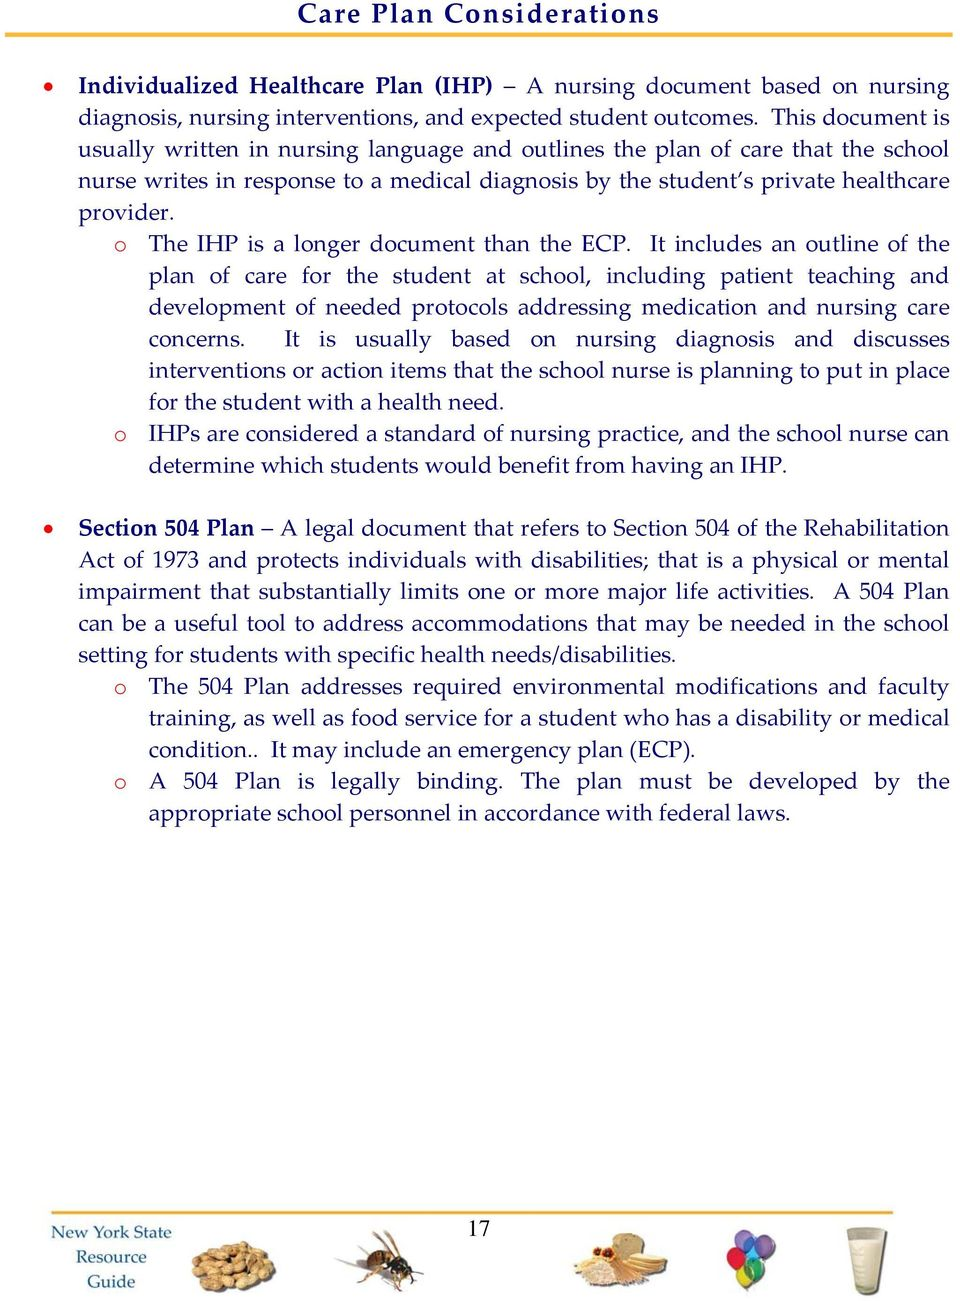 o The IHP is a longer document than the ECP.